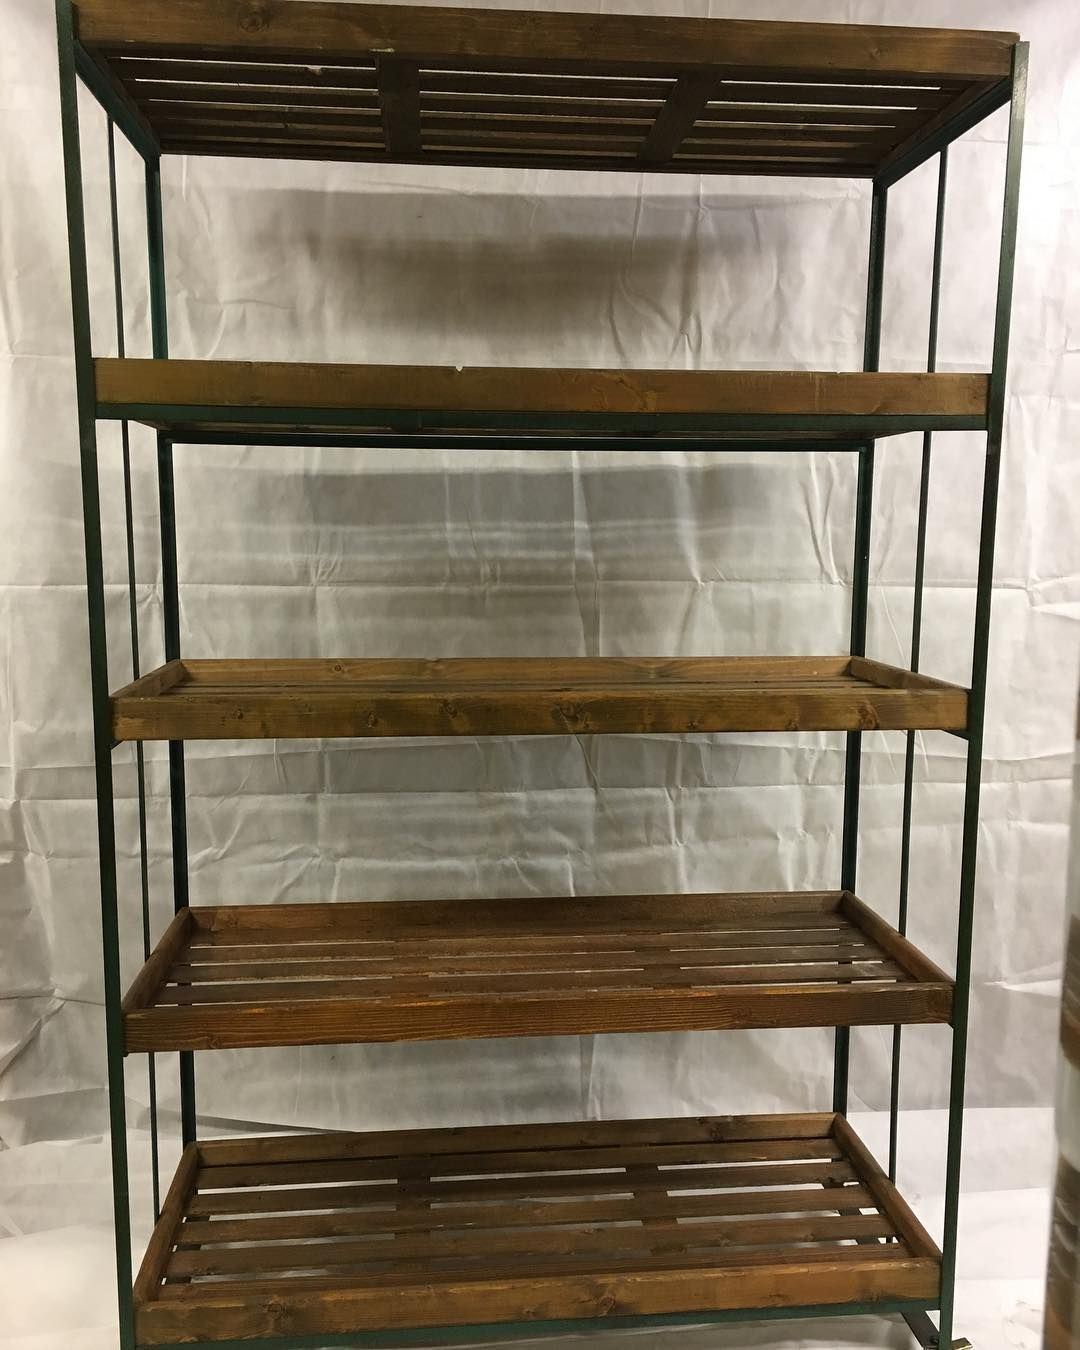 20s industrial factory trolley shelving on wheels WoodenTrolley ...